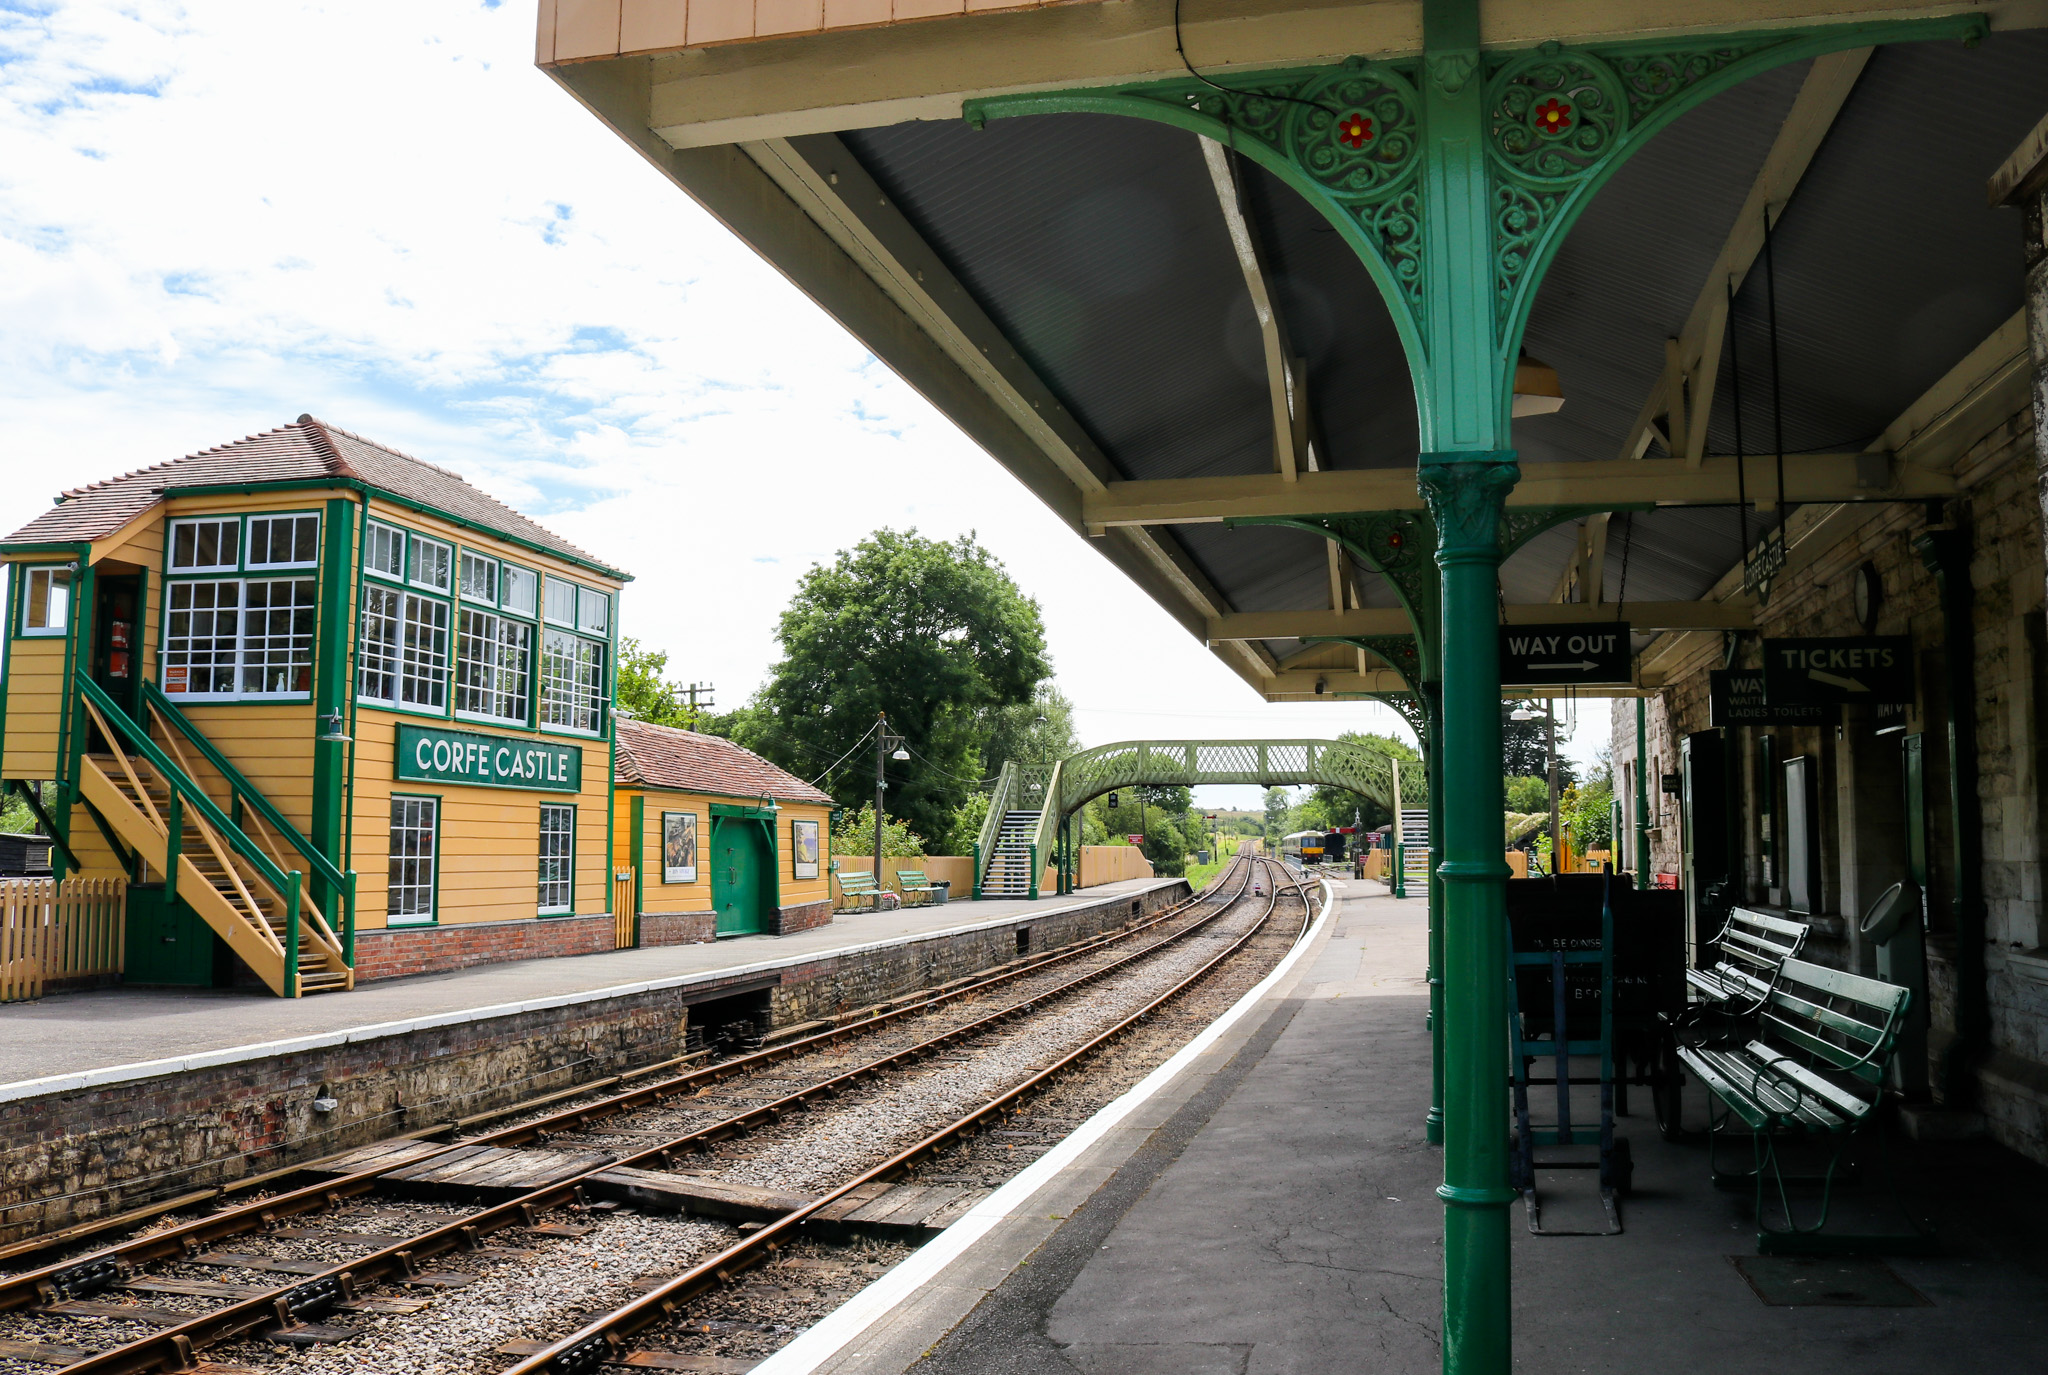 The tracks and waiting area at Corfe Castle railway station